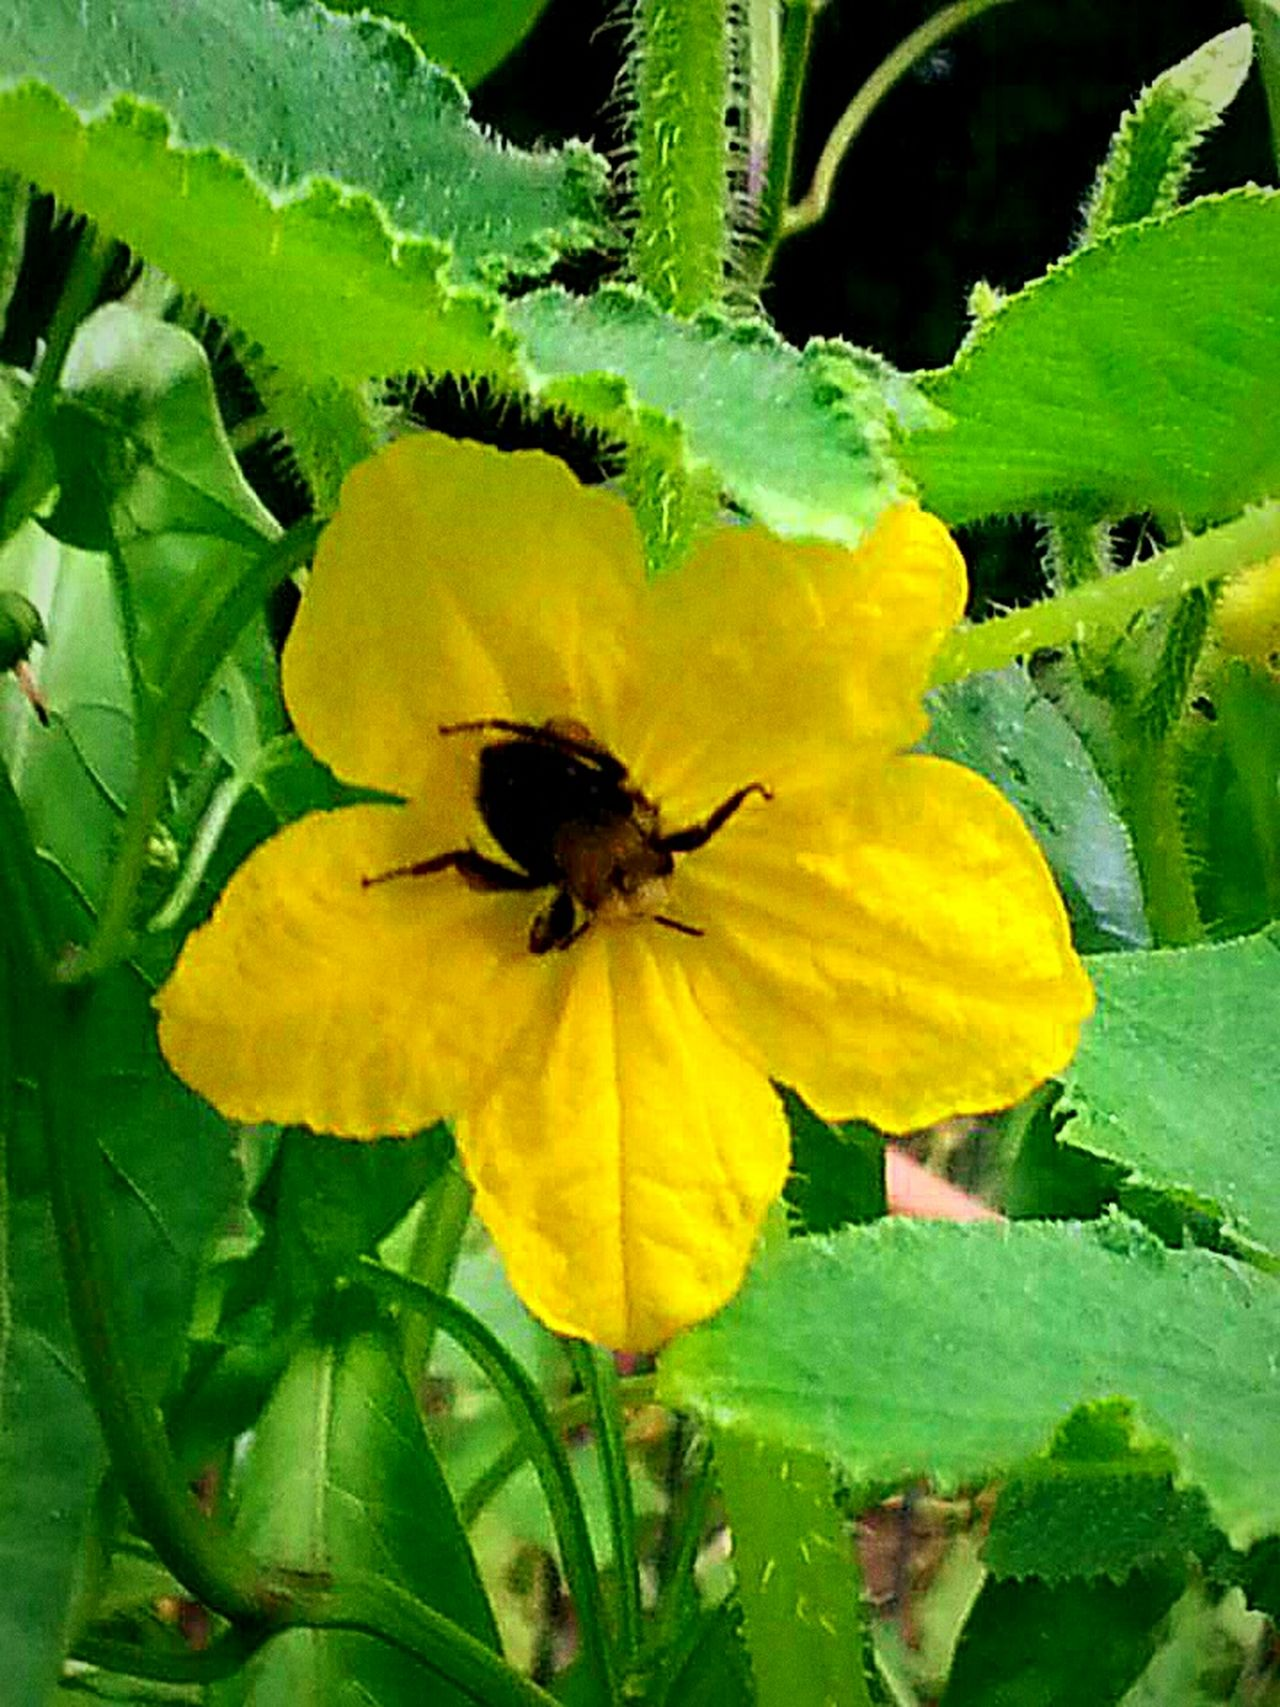 Nature's Diversities In Bloom Close-up TruthIsBeauty 💯 JustJennifer@TruthIsBeauty Bee! No People Yellow Flower Pumpkin Flower Garden Photography Insect Photography Fragility My Garden Everyone Eats Free Flower 2016 EyeEm Nature Enjoying Life Growth Beautiful Outdoors Nature TruthIsBeauty Photographic Art Green Tranquility Nature_collection